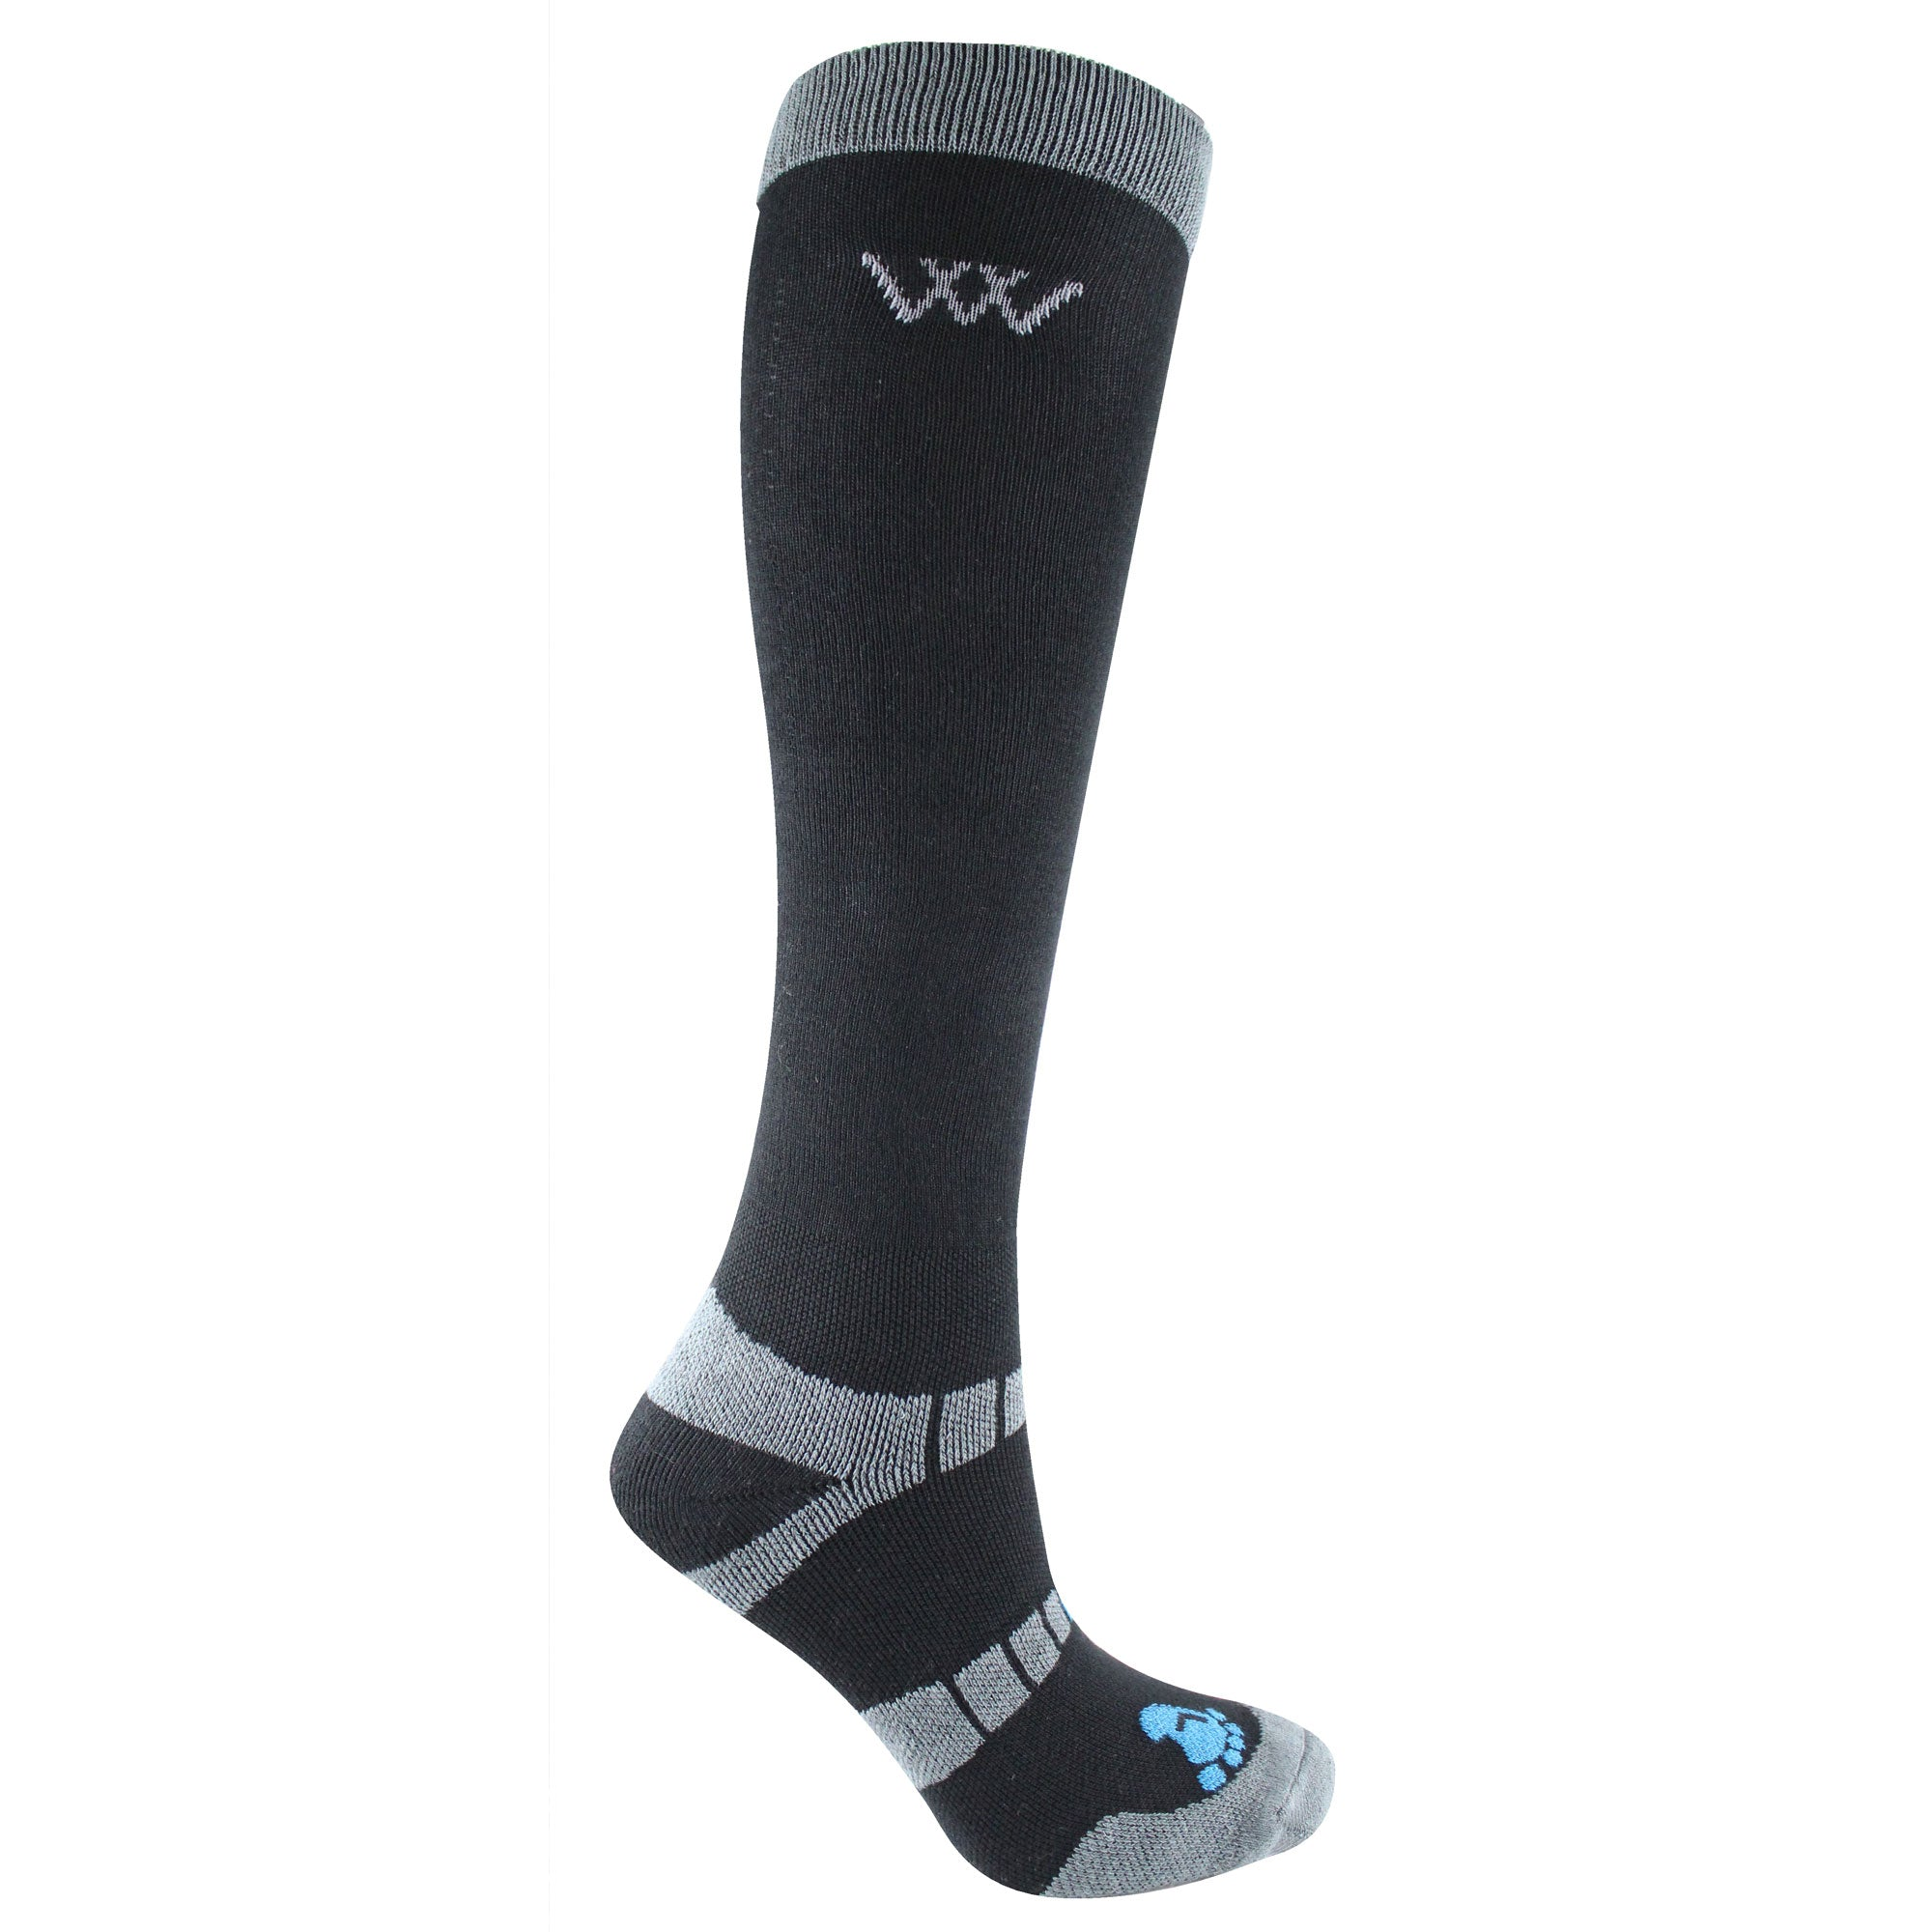 Woof Wear Performance Bamboo Boot Sock 2-Pack